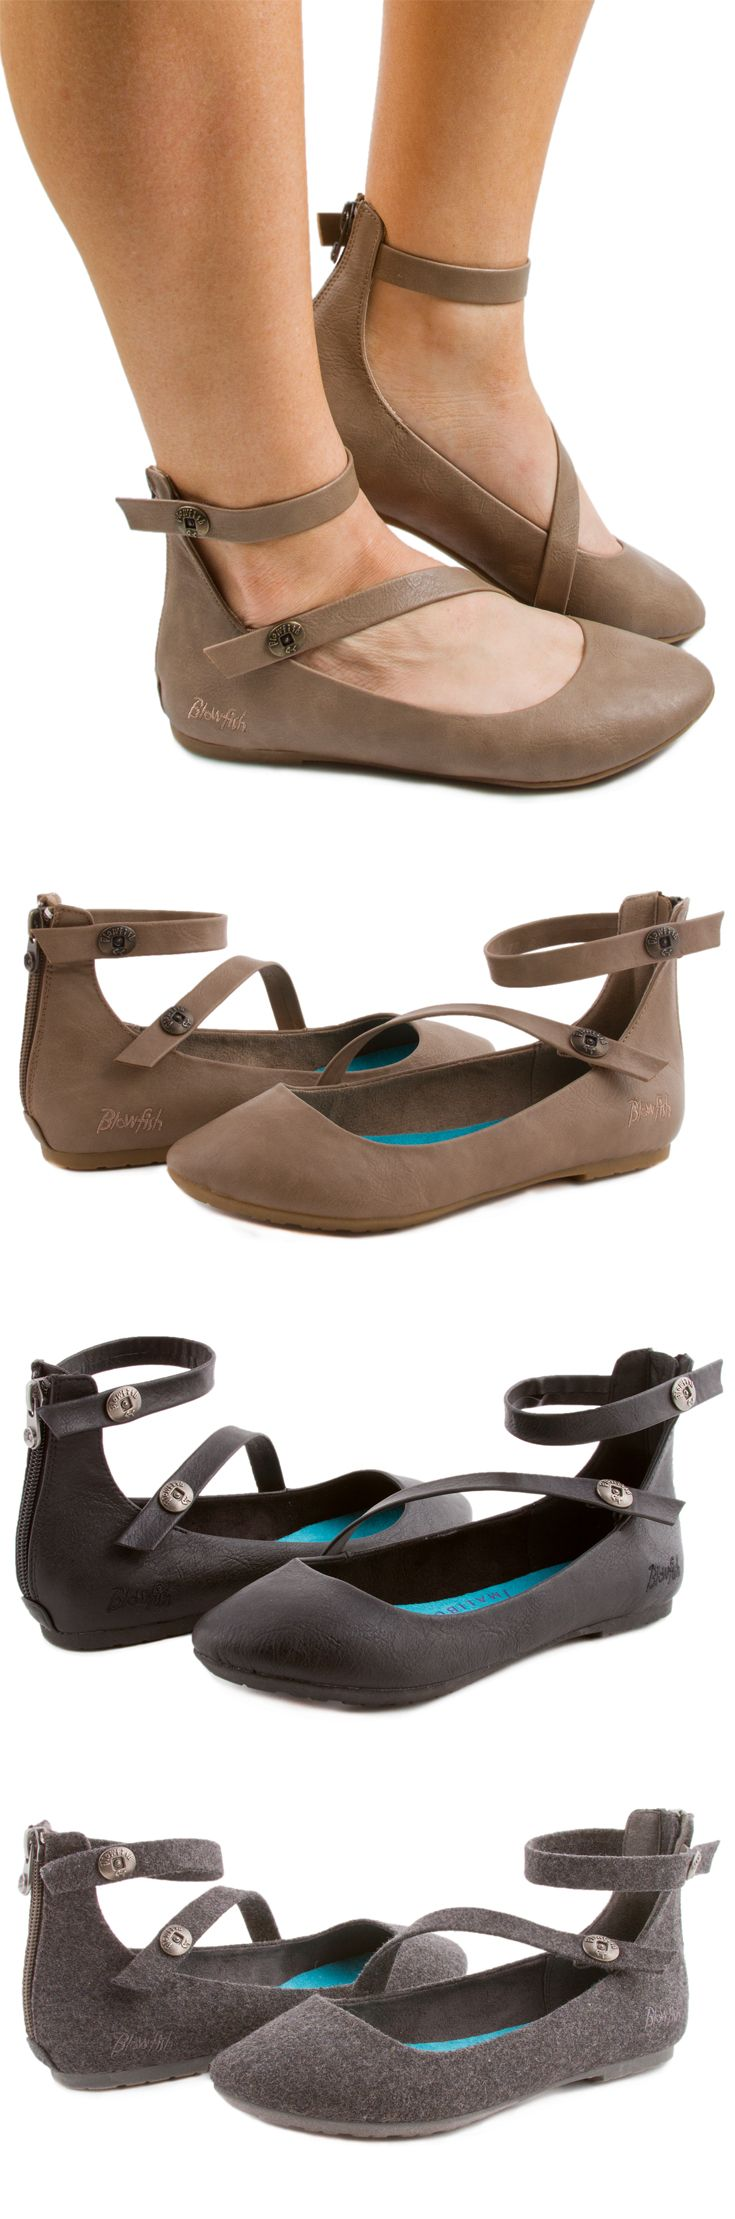 Need a great classic flat with a twist for your fall wardrobe? Blowfish Shoes Ranton flat is exactly what you need. This style features a round toe, ankle strap, and a decorative asymmetrical strap that extends from the ankle over the vamp towards the toe. This is a versatile flat with a slightly cushioned footbed that you can wear for work and play!